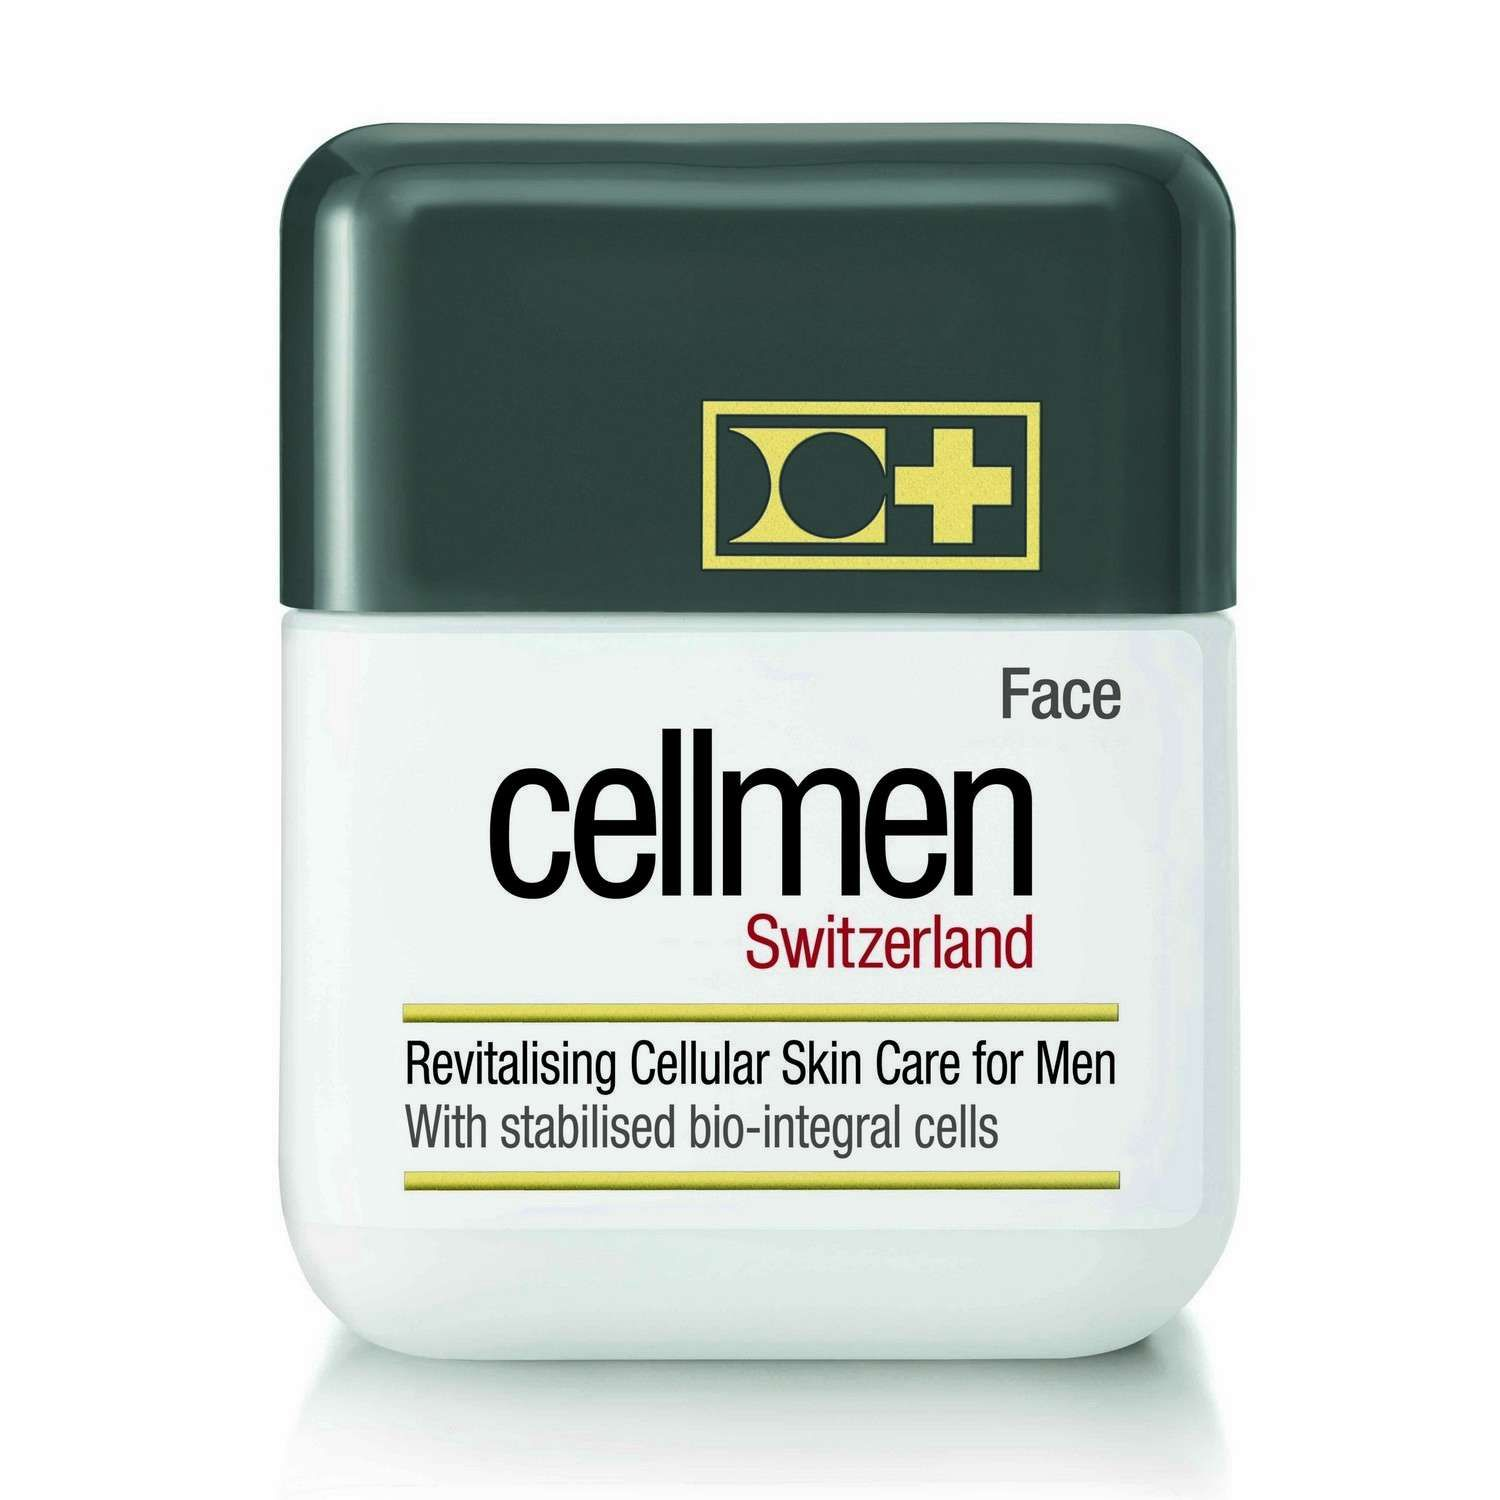 cellmen Face [Jar] (50 ml)